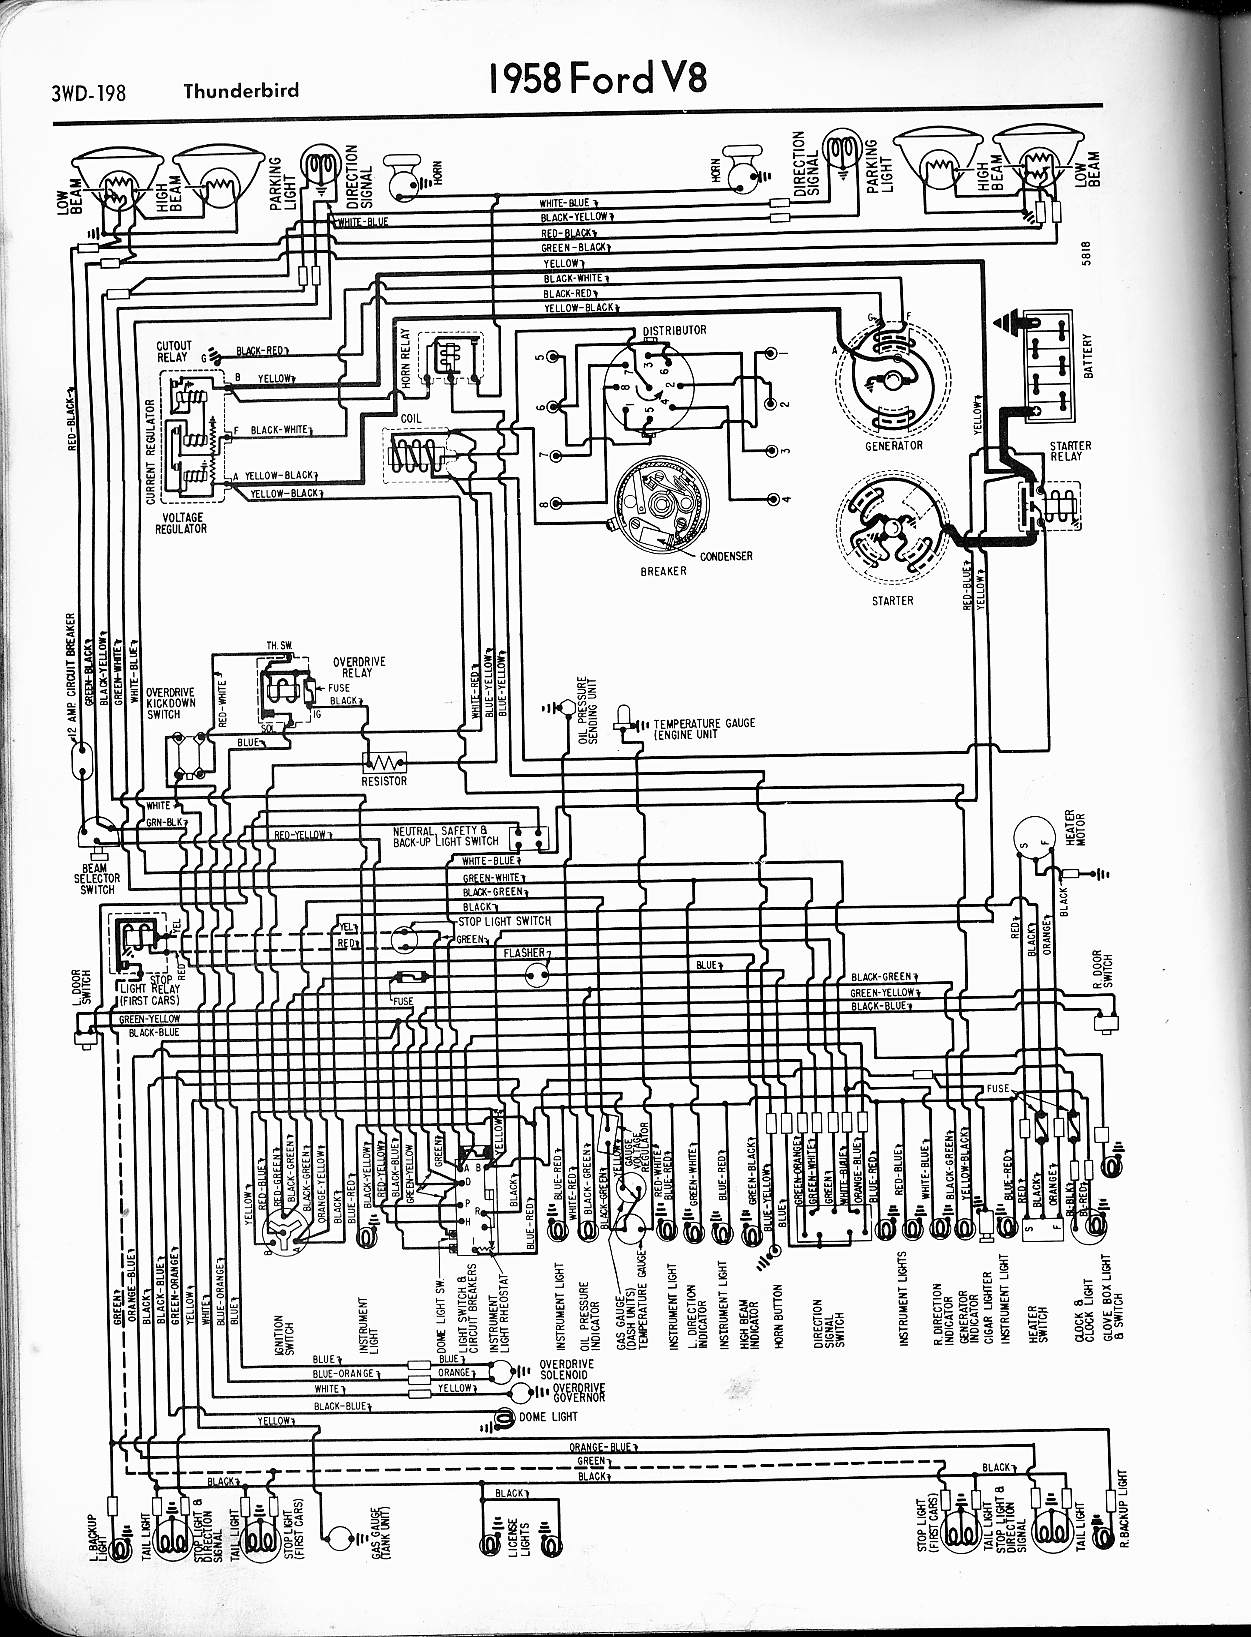 65 Thunderbird Wiring Diagram Modern Design Of 64 Chevy Truck 57 Ford Diagrams Rh Oldcarmanualproject Com For Dirgalos